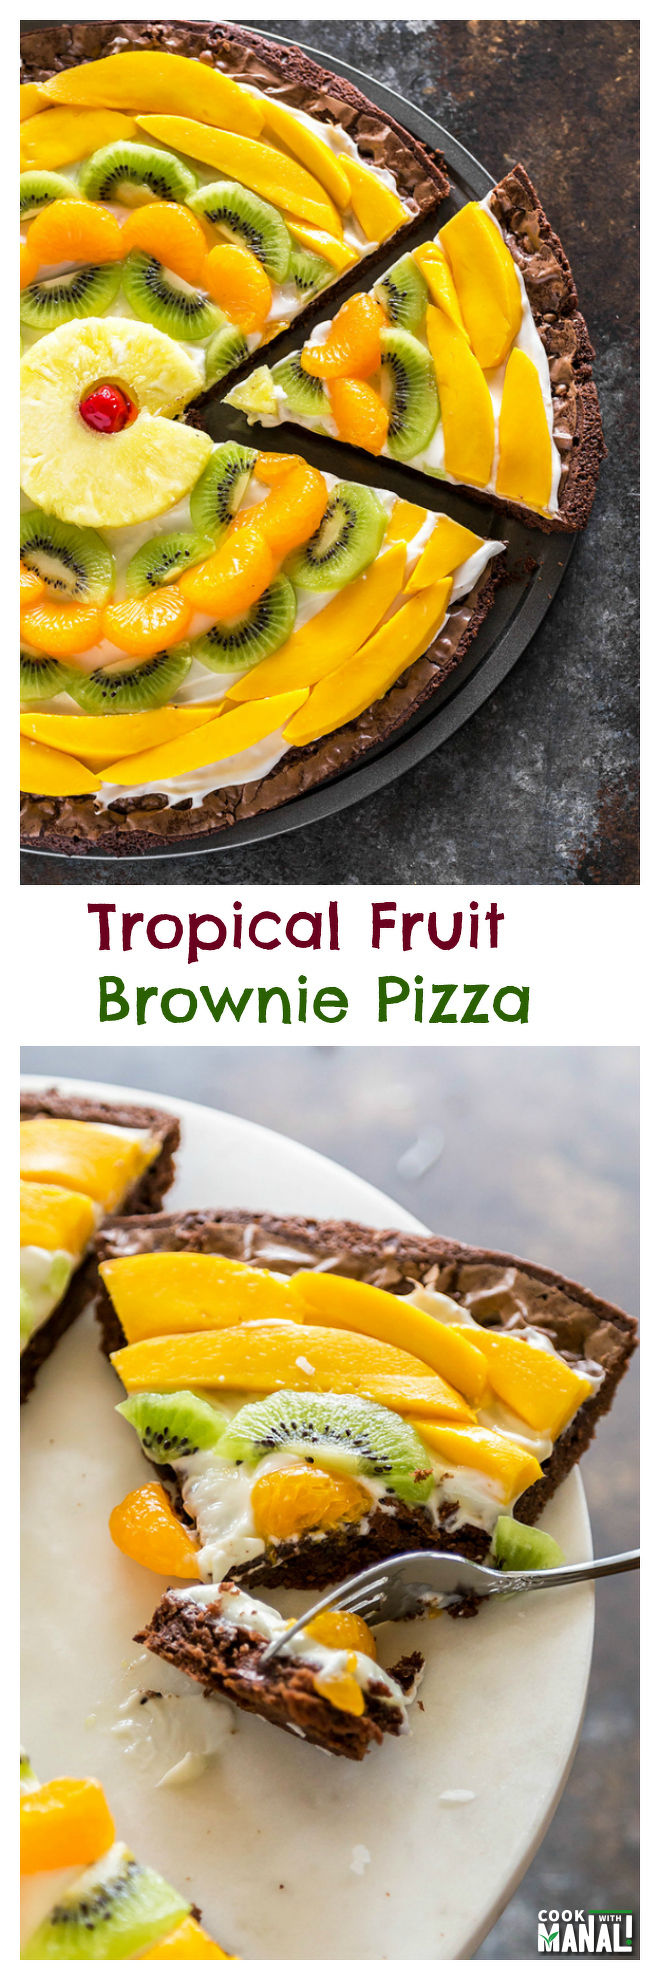 Tropical Fruit Brownie Pizza-Collage